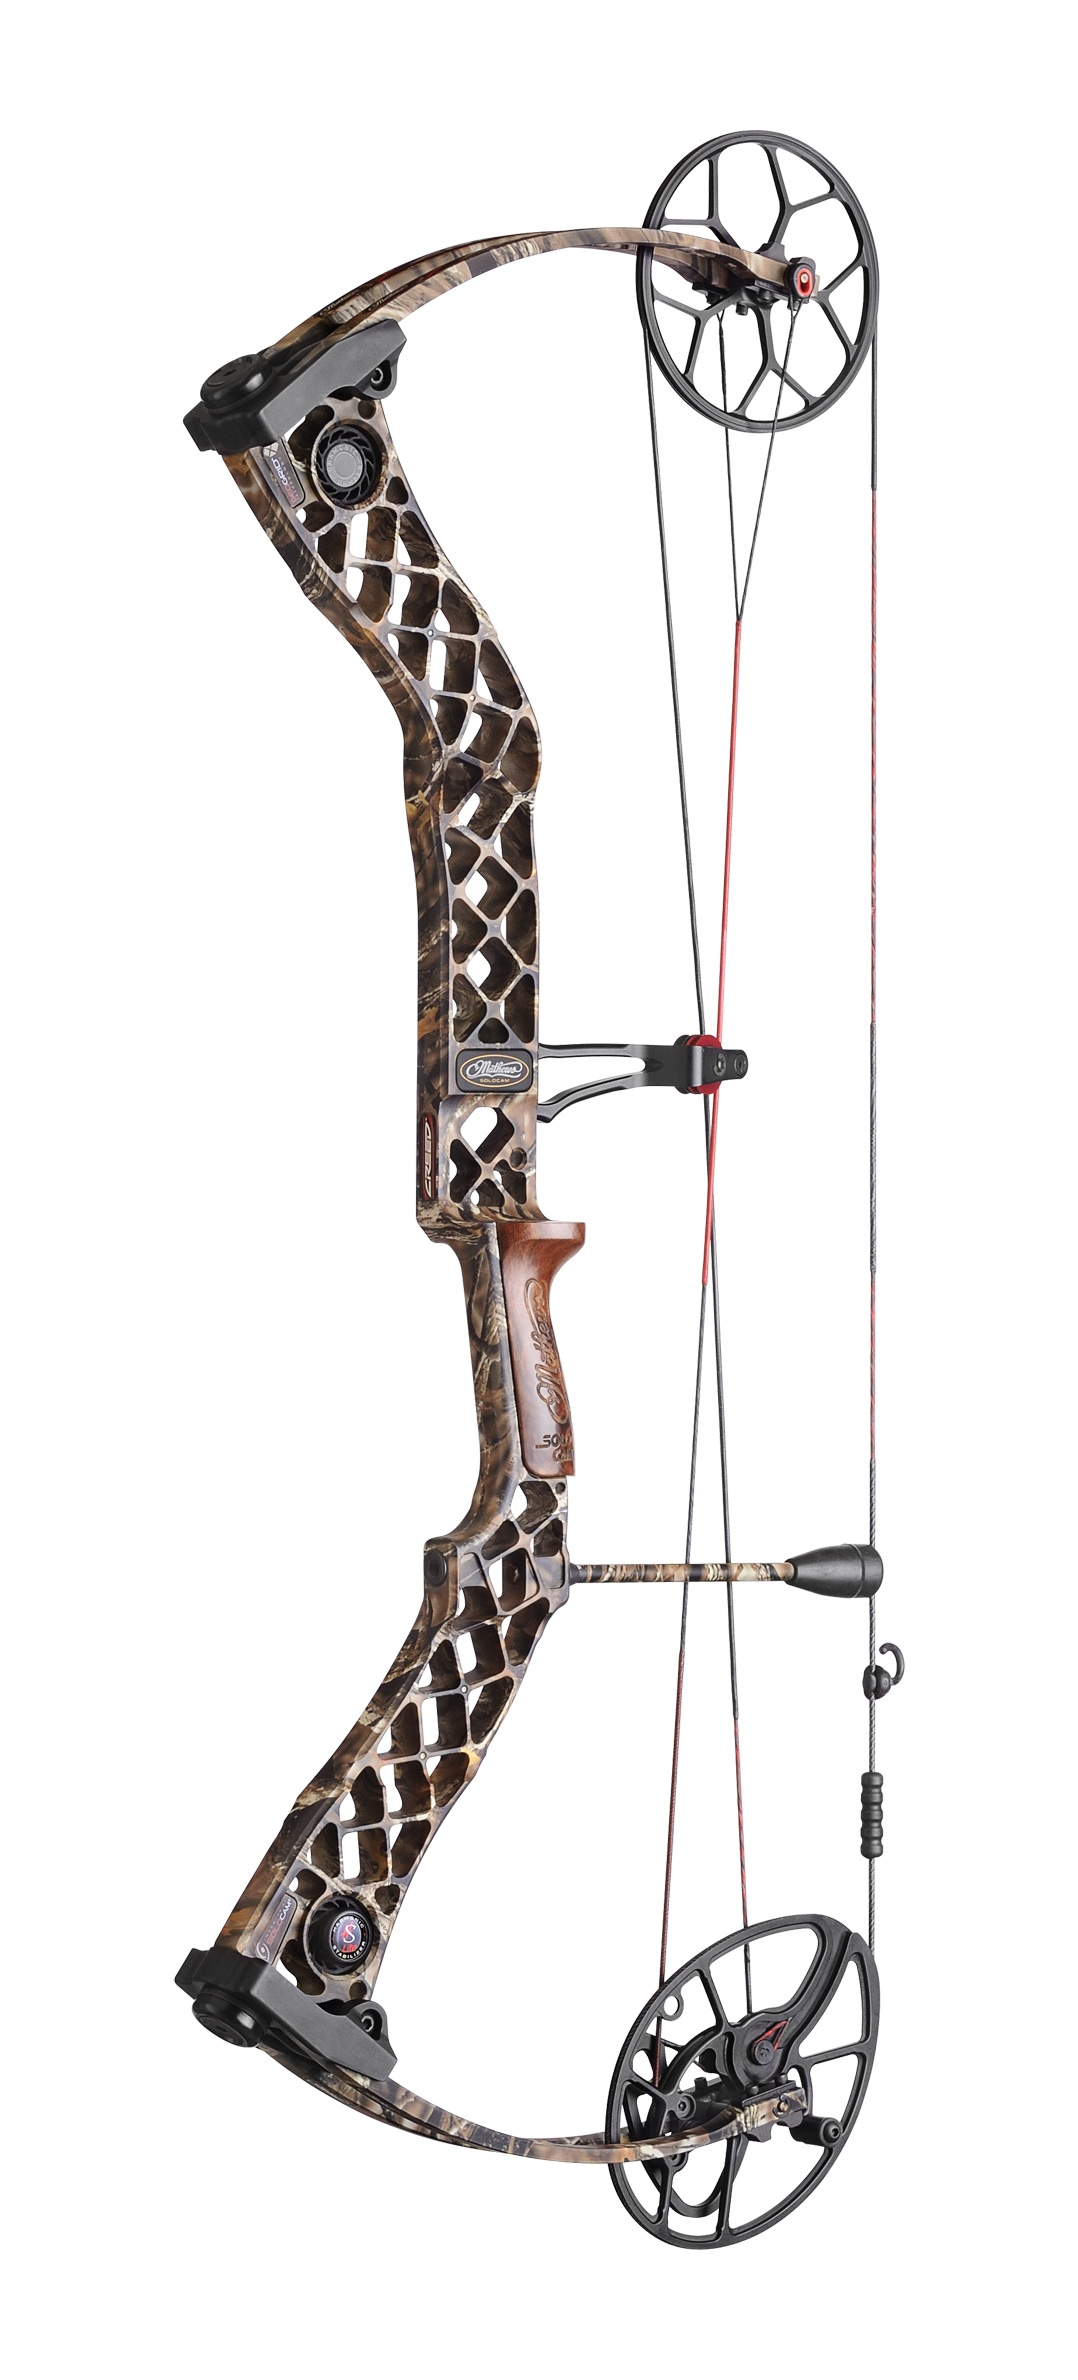 Mathews Creed, in camouflage, sports a 30-inch axle-to-axle height and 7-inch brace height for speed and accuracy.